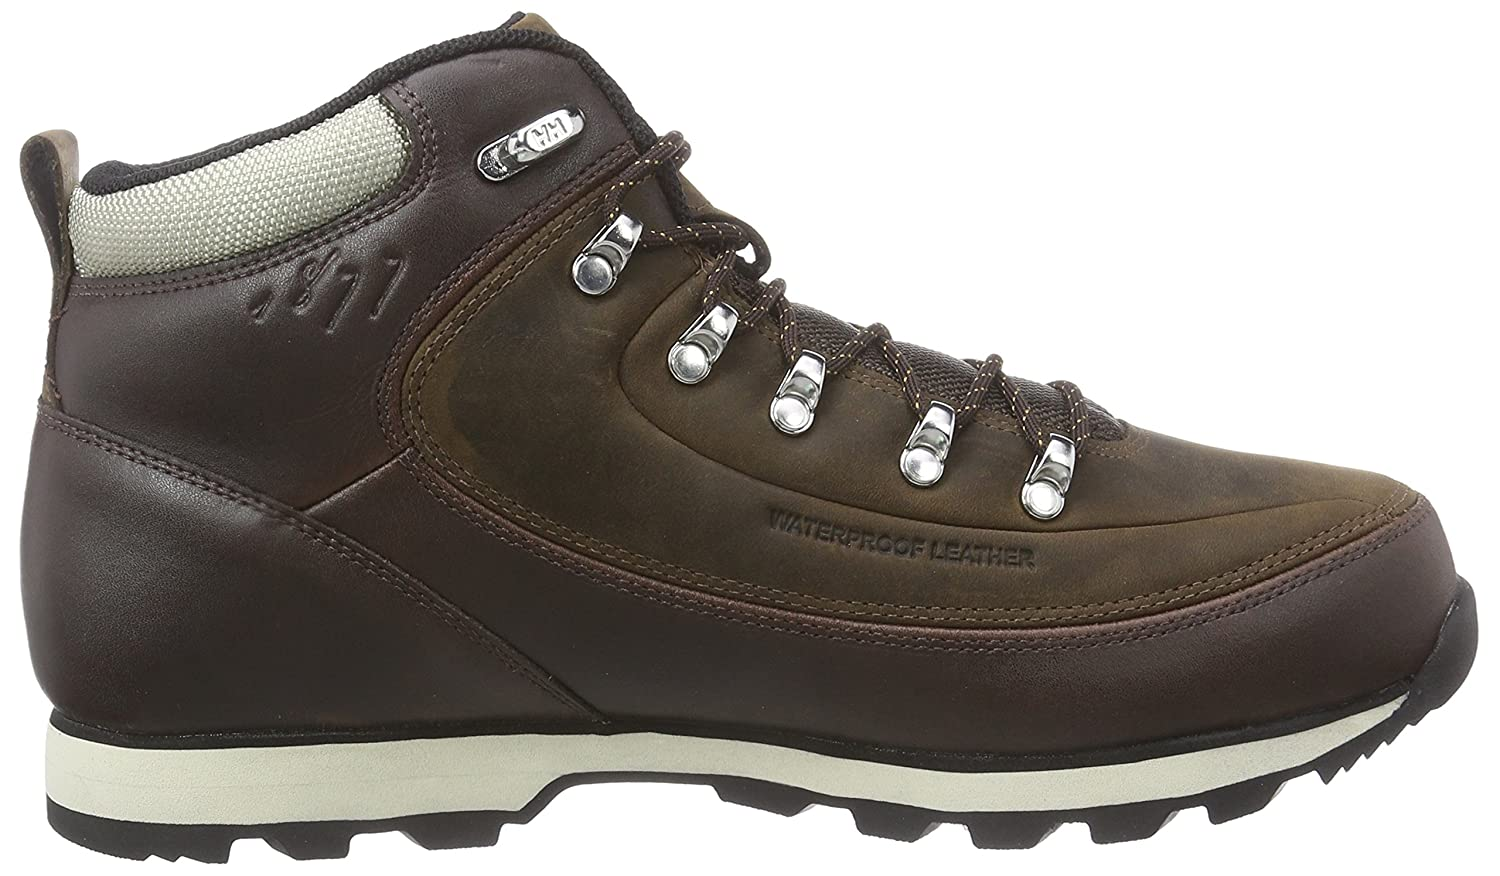 Mens The Forester Warm Lined Classic Boots Short Length Helly Hansen MO97YST